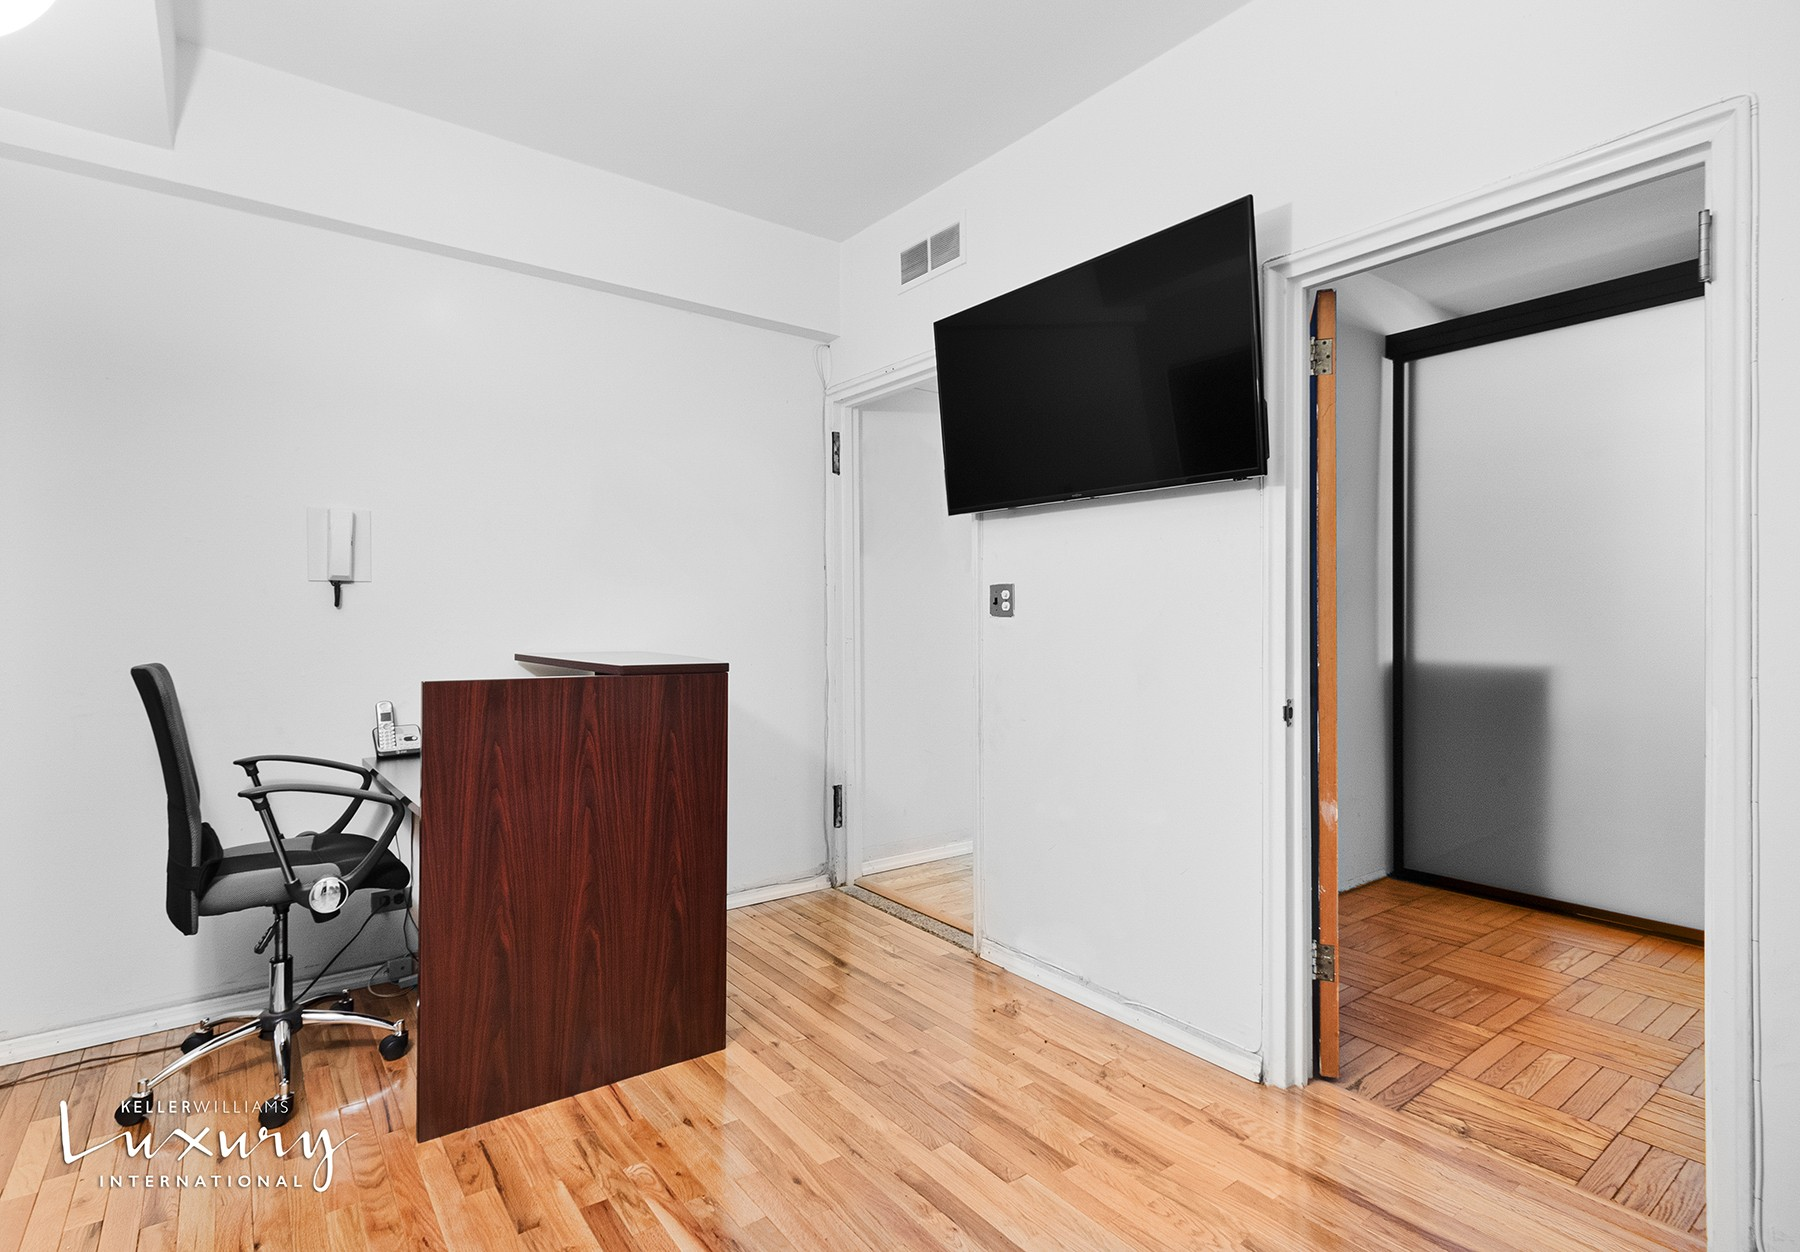 Apartment for sale at 15 West 84th Street, Apt 1-J